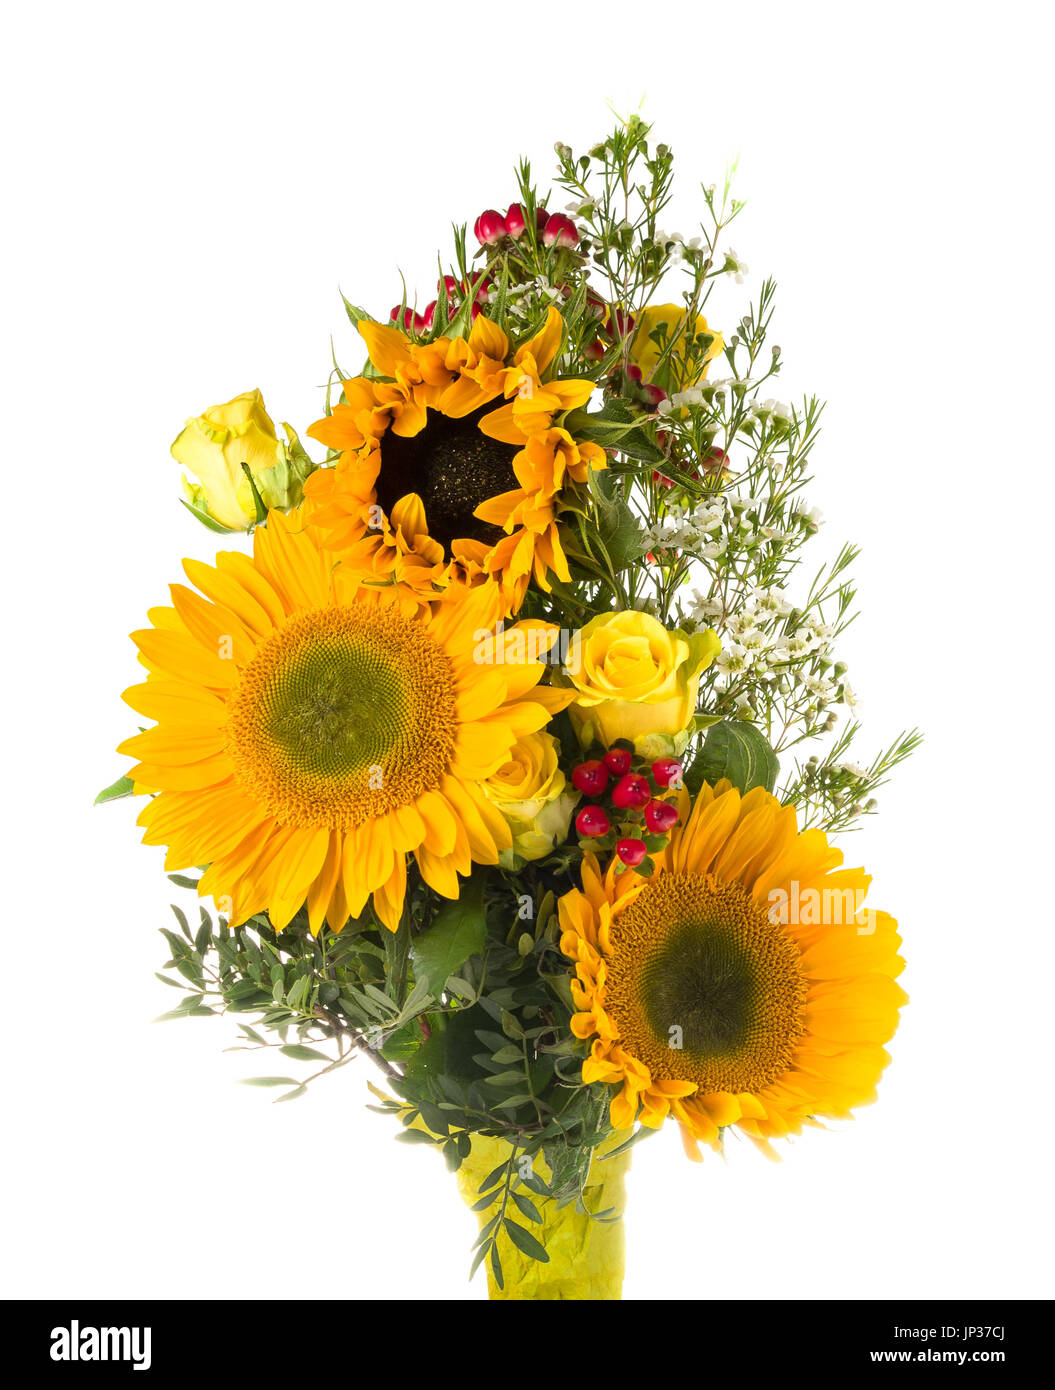 Bouquet With Sunflowers And Roses On White Background